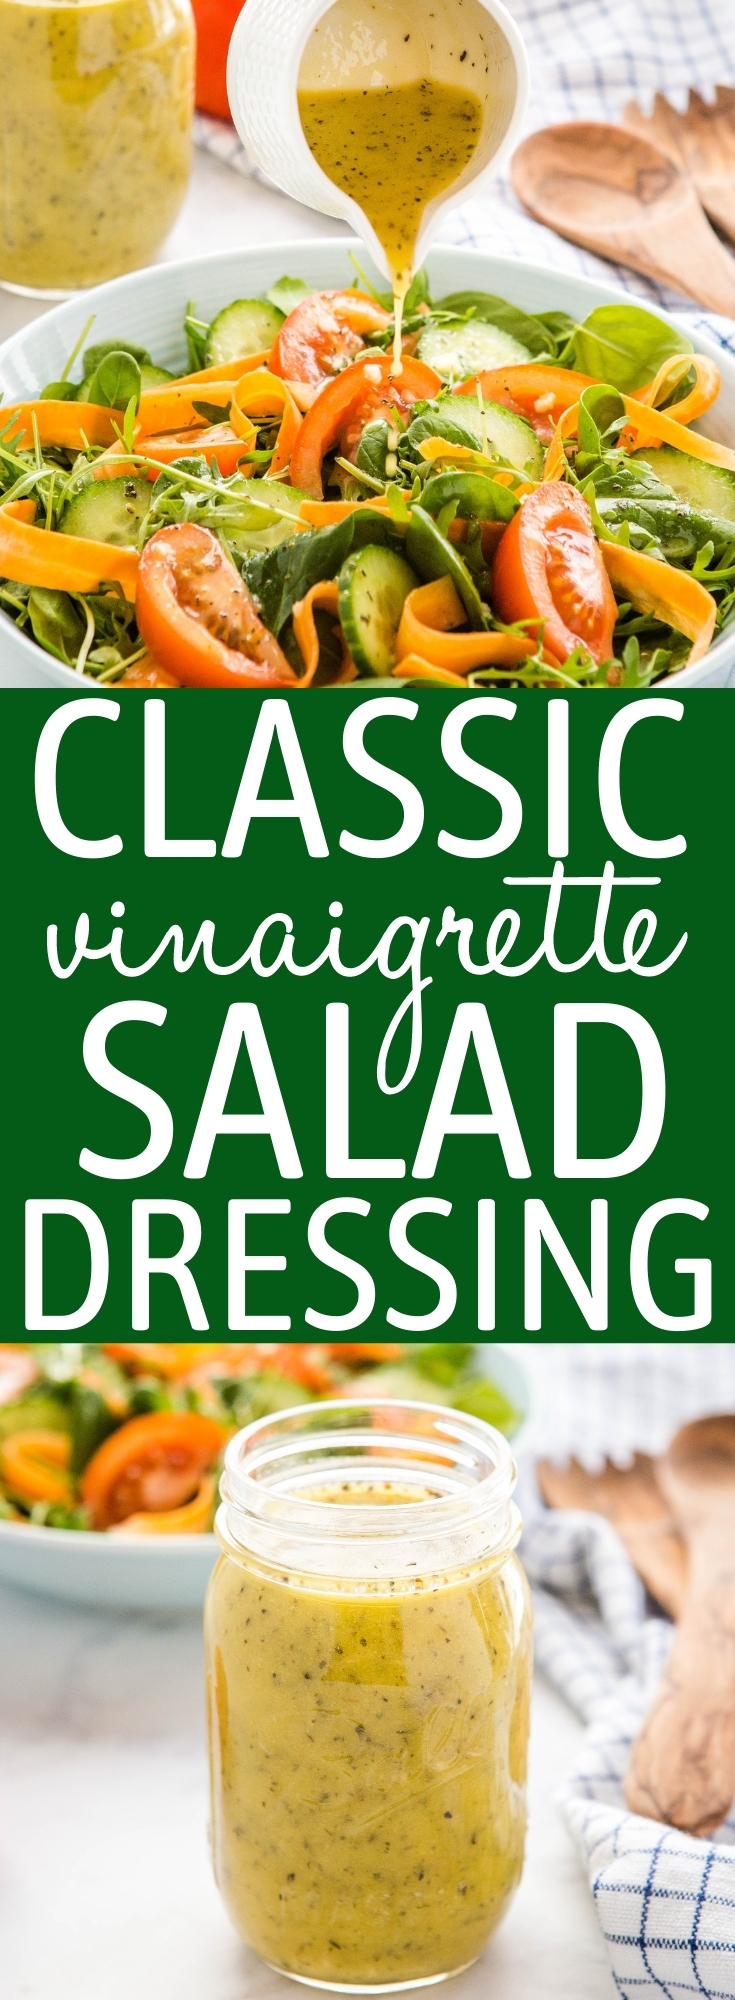 This Classic Vinaigrette Salad Dressing Recipe is perfect for any salad and it's so easy to make! Better than store-bought dressing! Recipe from thebusybaker.ca! #saladdressingrecipe #vinaigrette #dressing #homemade #healthy #saladdressing #healthysaladdressing #homemadesaladdressing via @busybakerblog